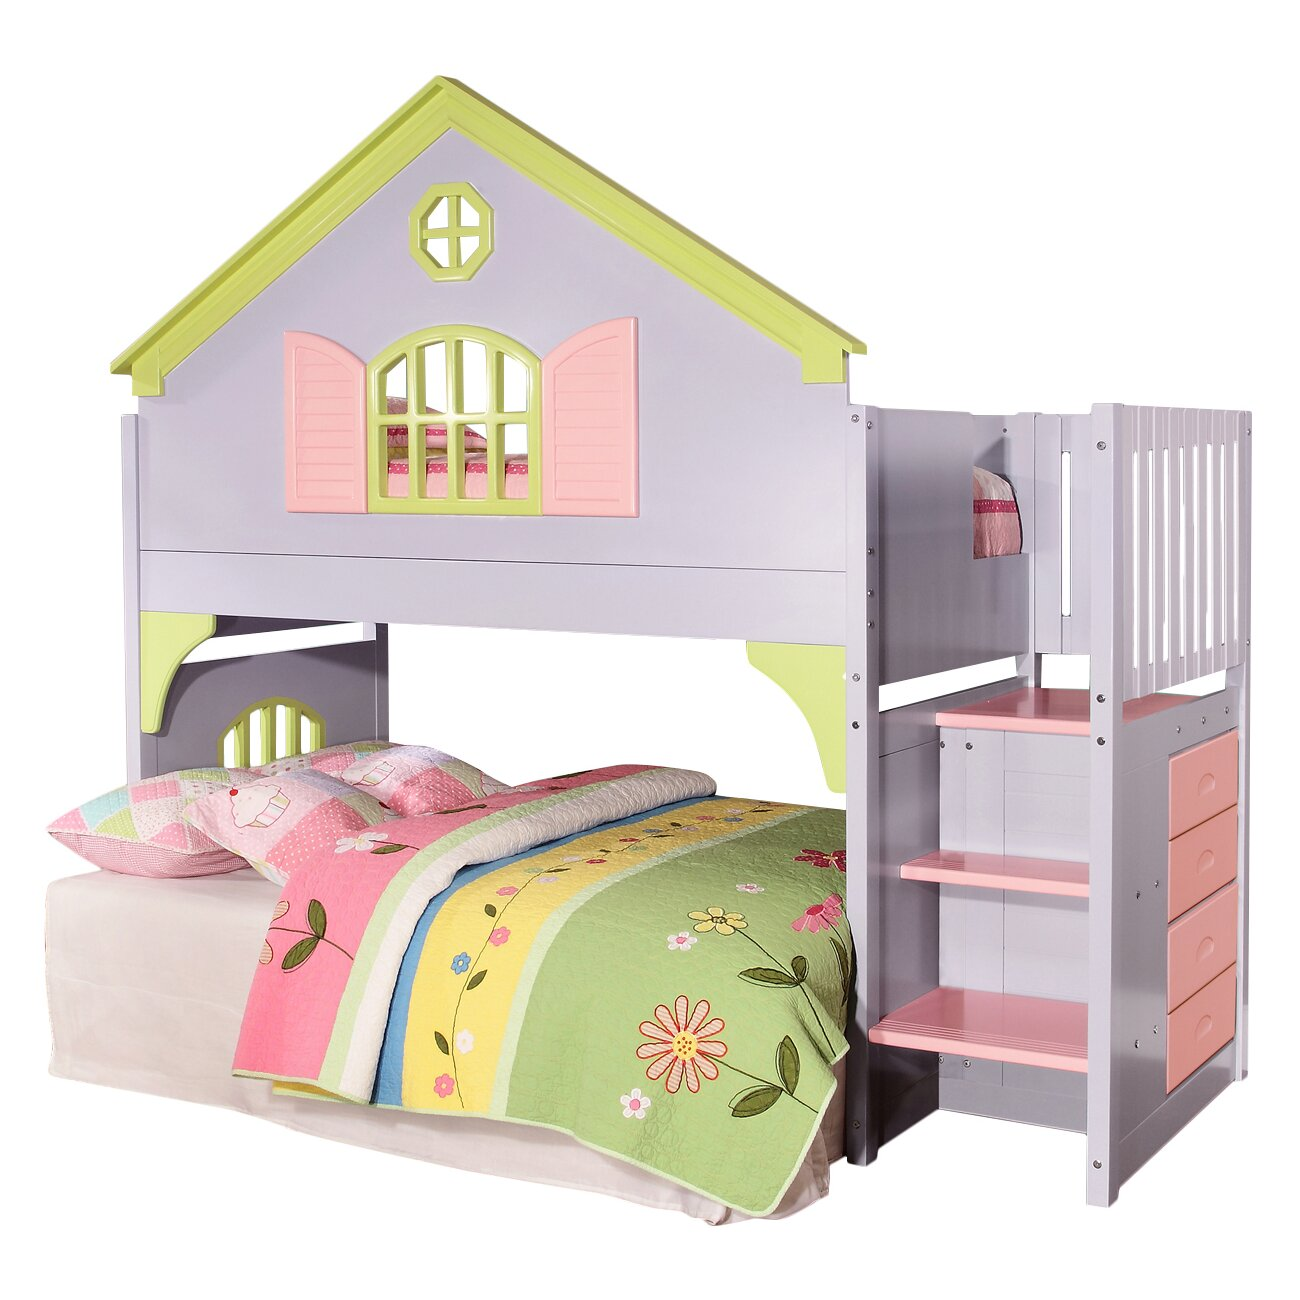 Donco kids donco kids doll house twin loft bed reviews for Toddler bunk beds